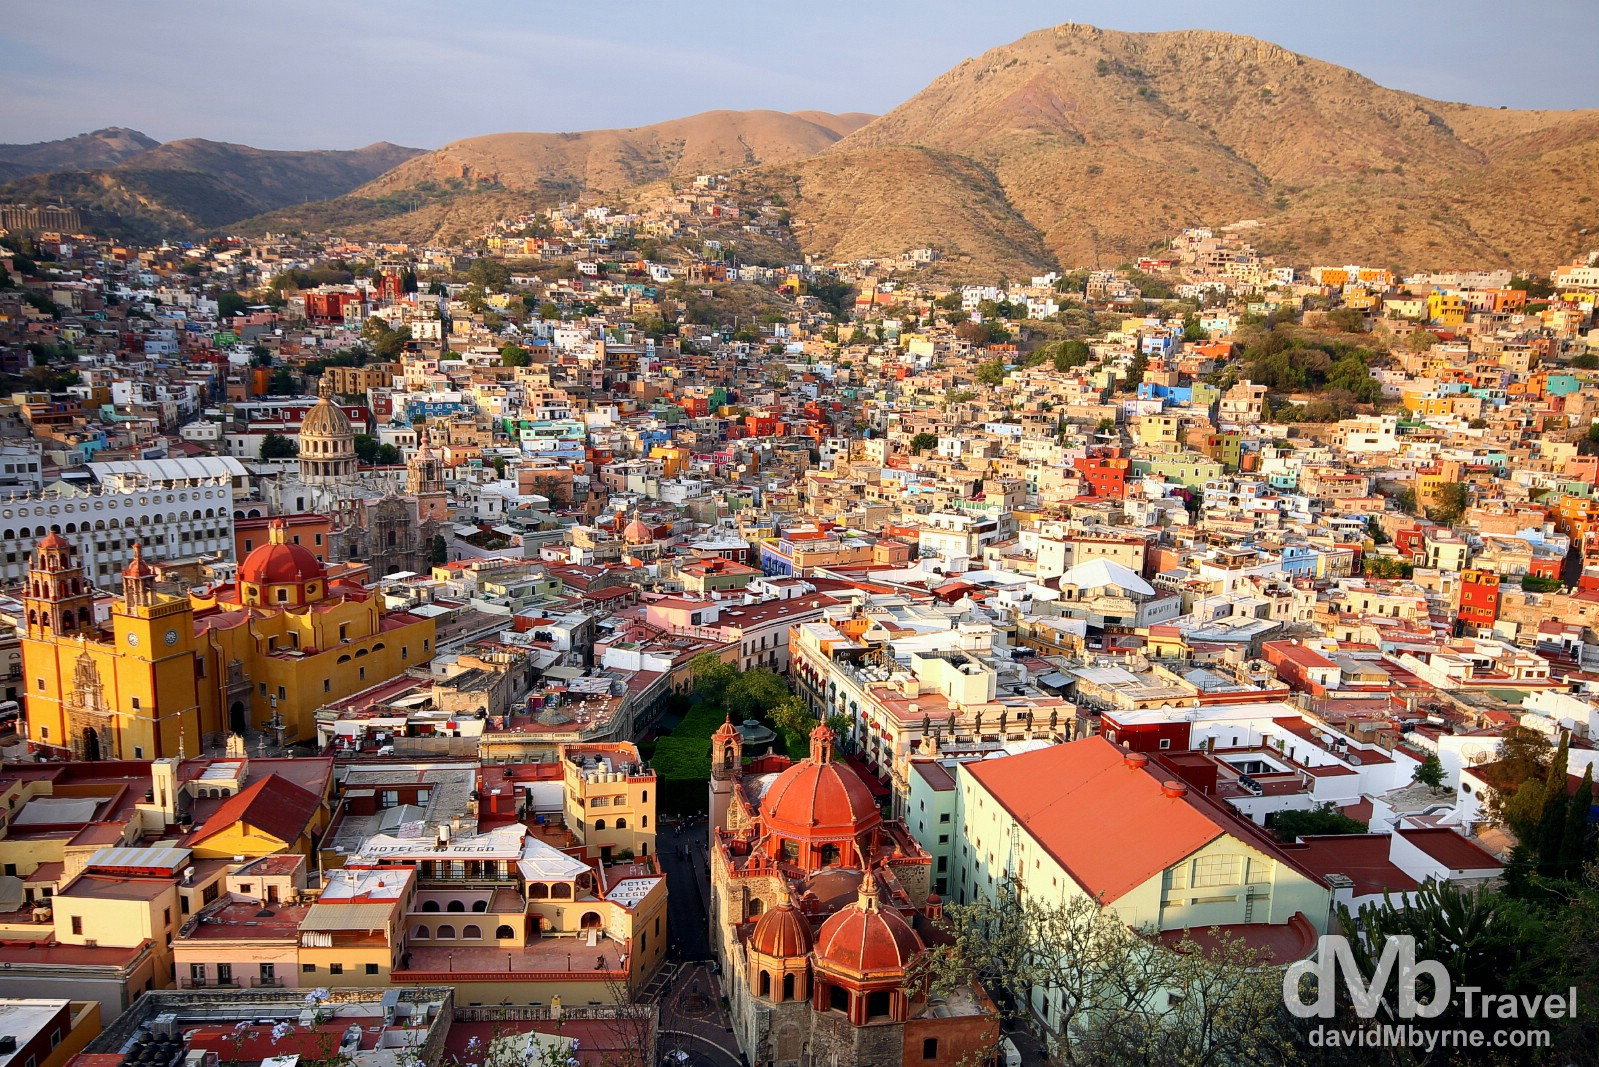 The city of Guanajuato, Mexico, approach sunset as seen from Panoromica overlooking the city. April 23rd 2013.